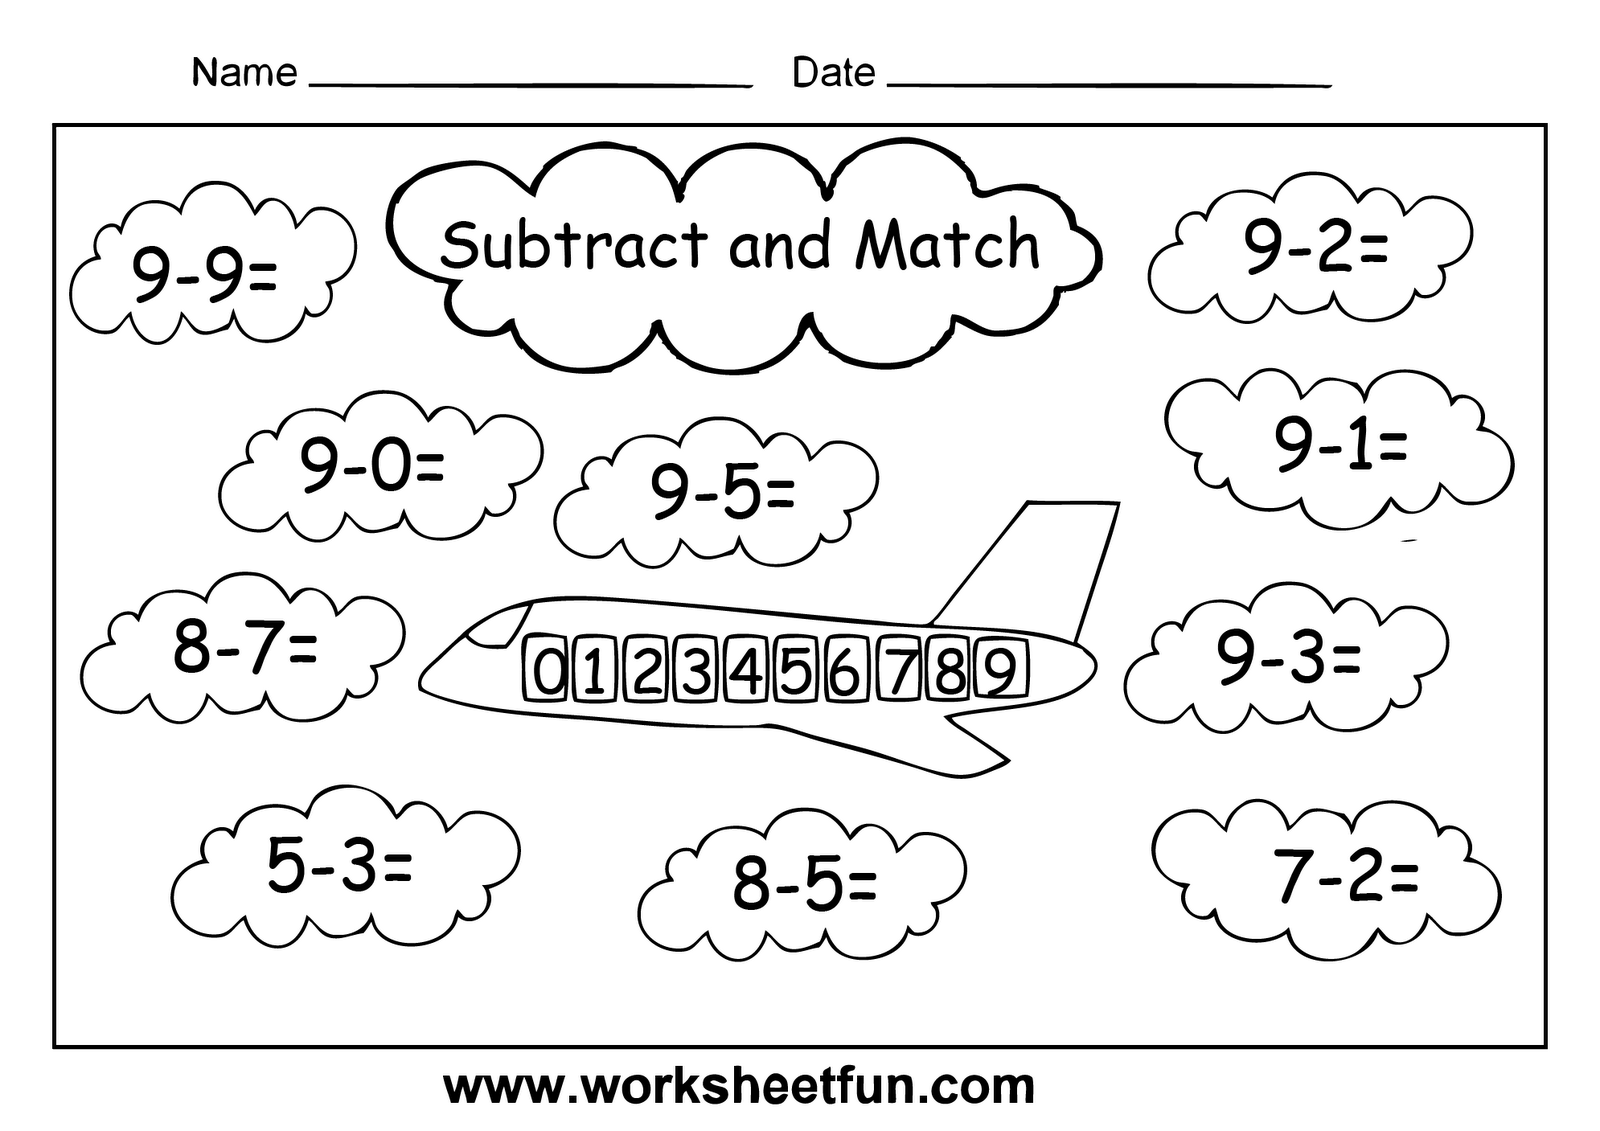 math worksheet : 1000 images about printable math worksheets on pinterest  1st  : Easy Subtraction Worksheets